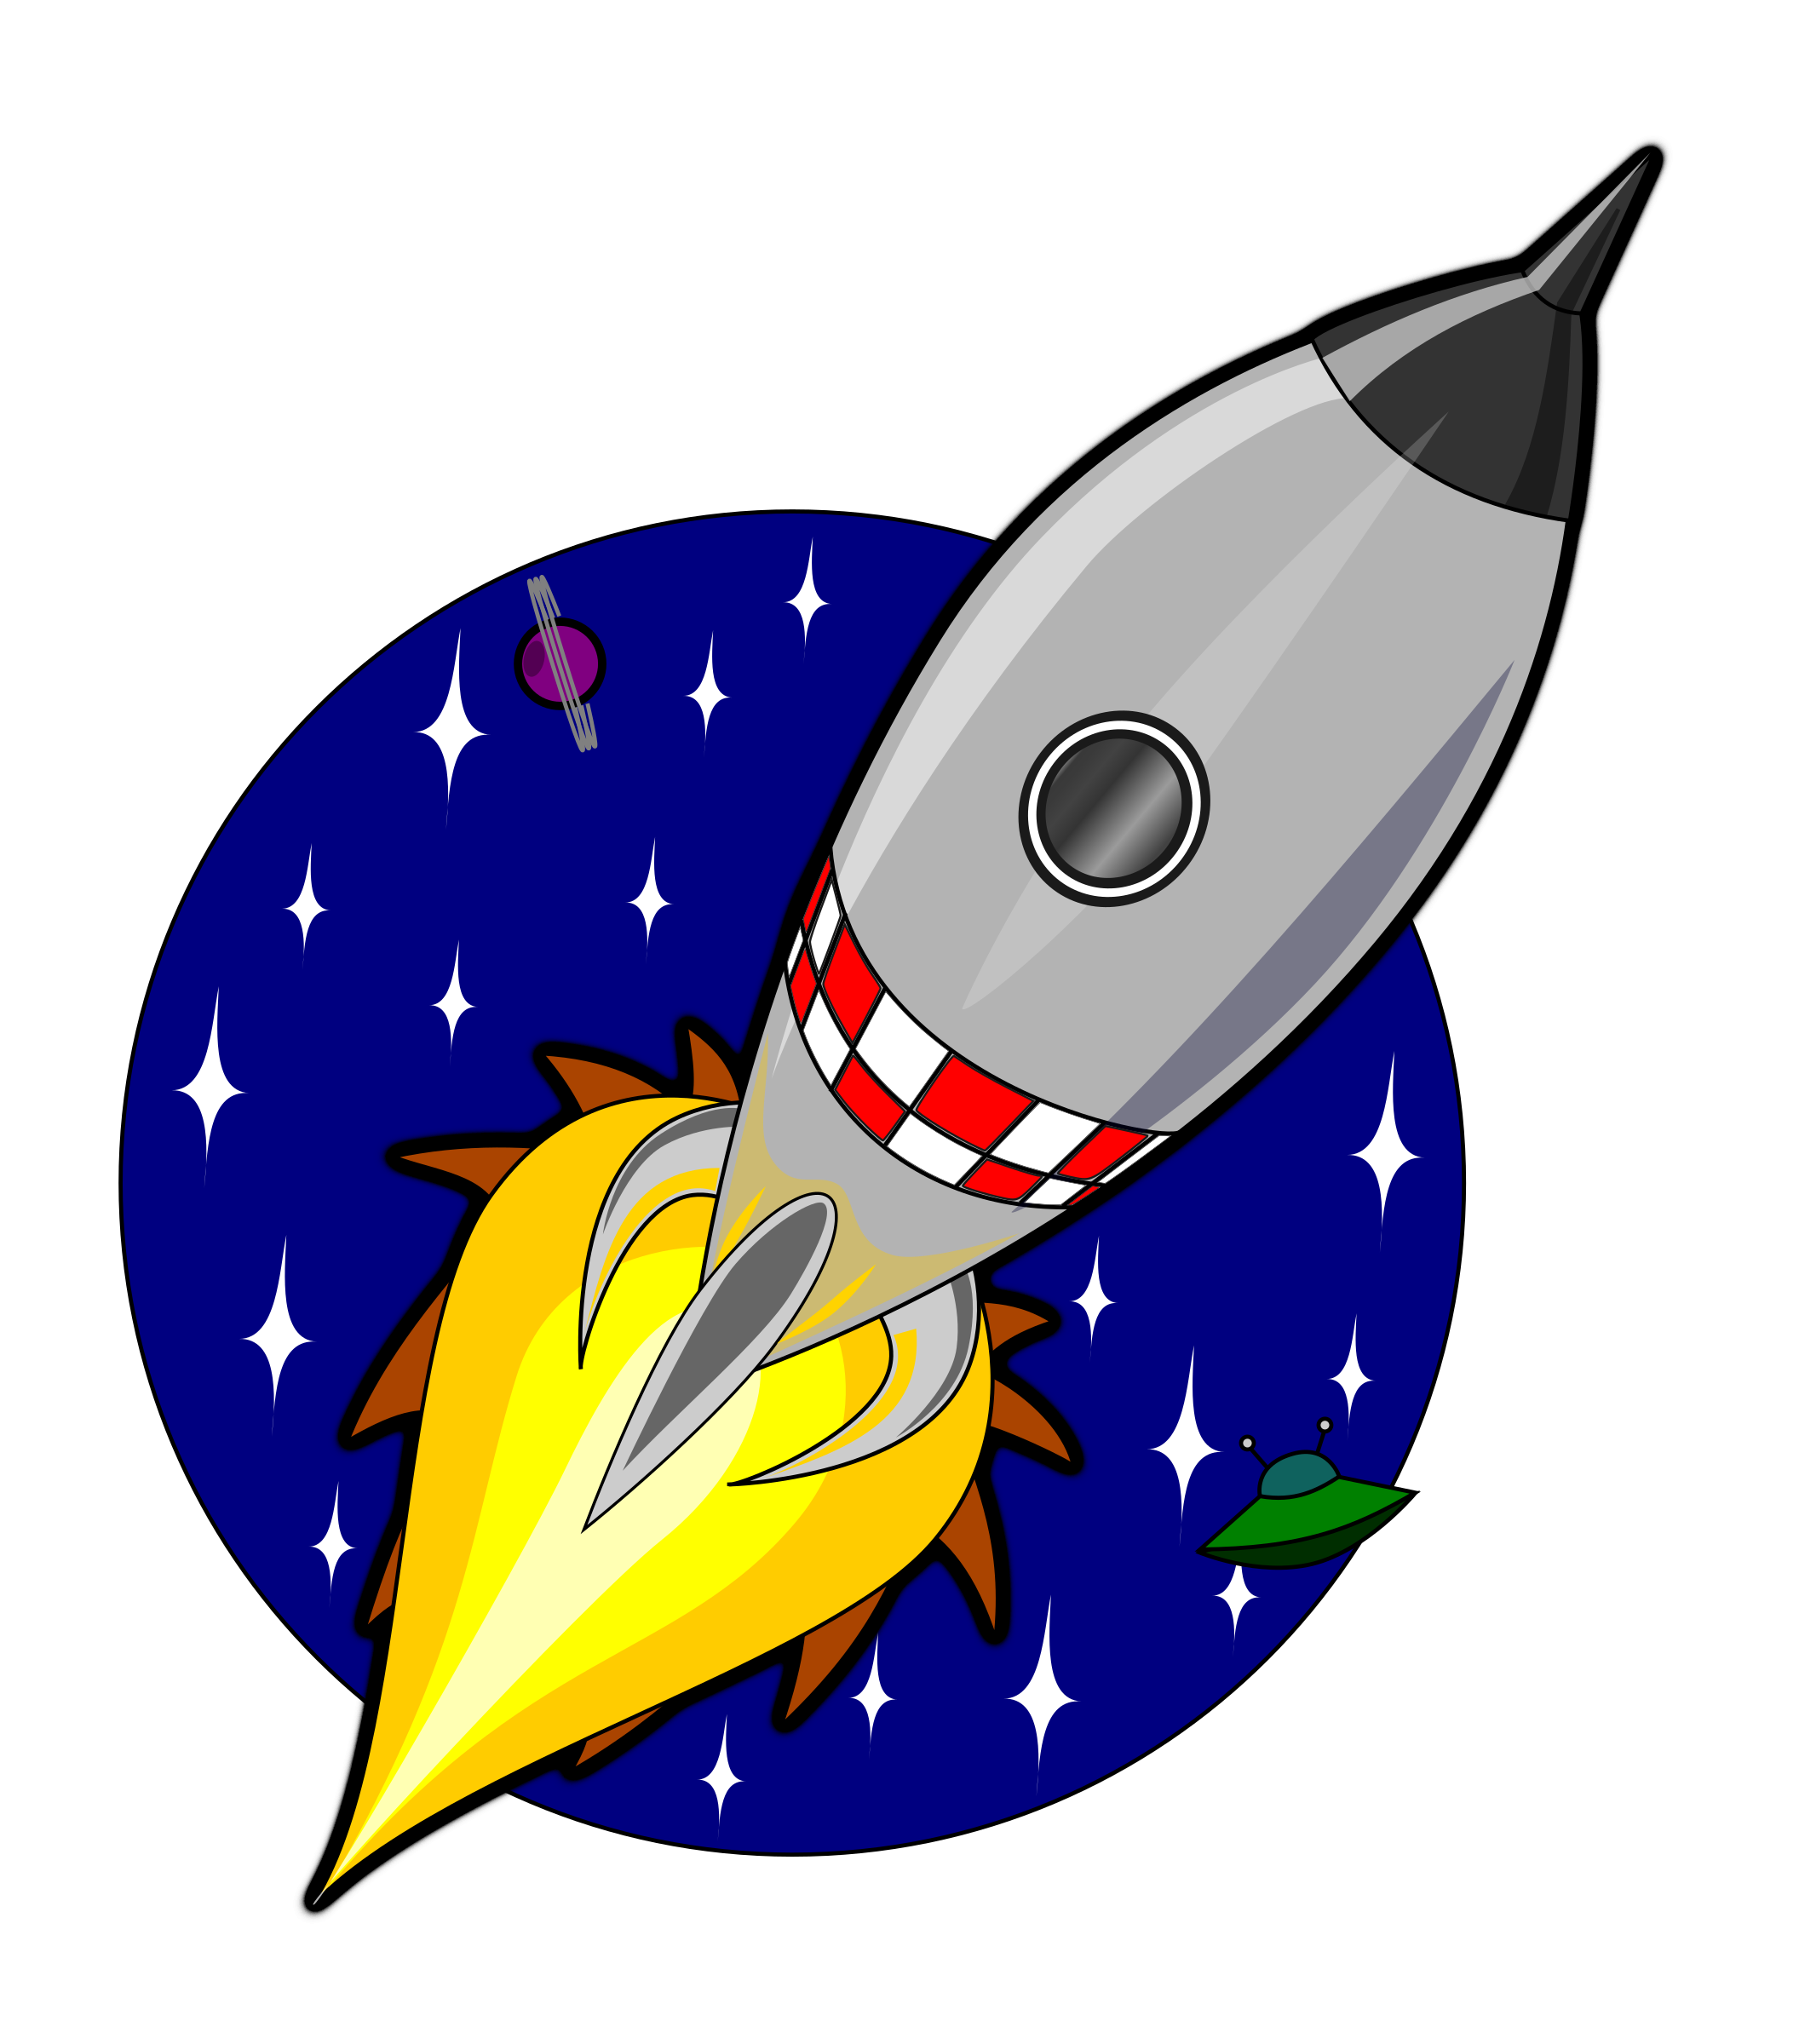 Animation of Kliponius-Cartoon-rocket using JavaScript by aukipa